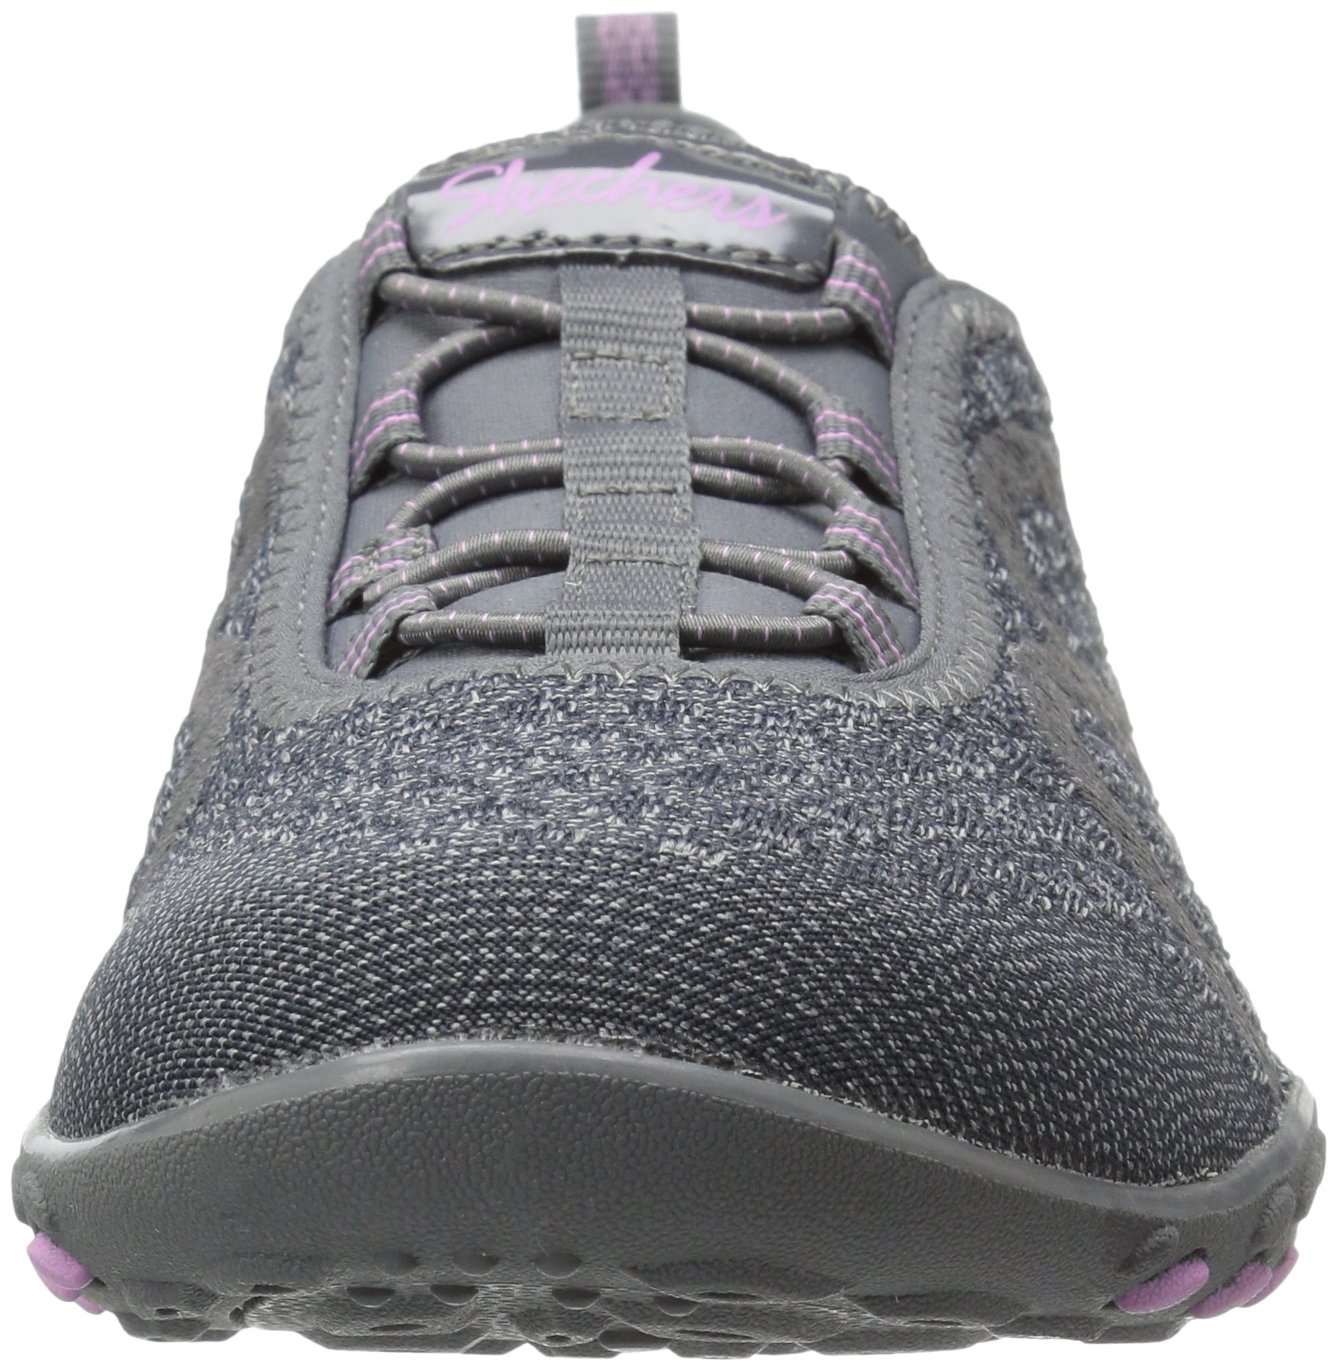 357ce75d0da5d ... Skechers Women s BREATHE-EASY - FORTUNEKNIT FORTUNEKNIT FORTUNEKNIT  Shoes B01HT8YE48 Fashion Sneakers 780e4a ...